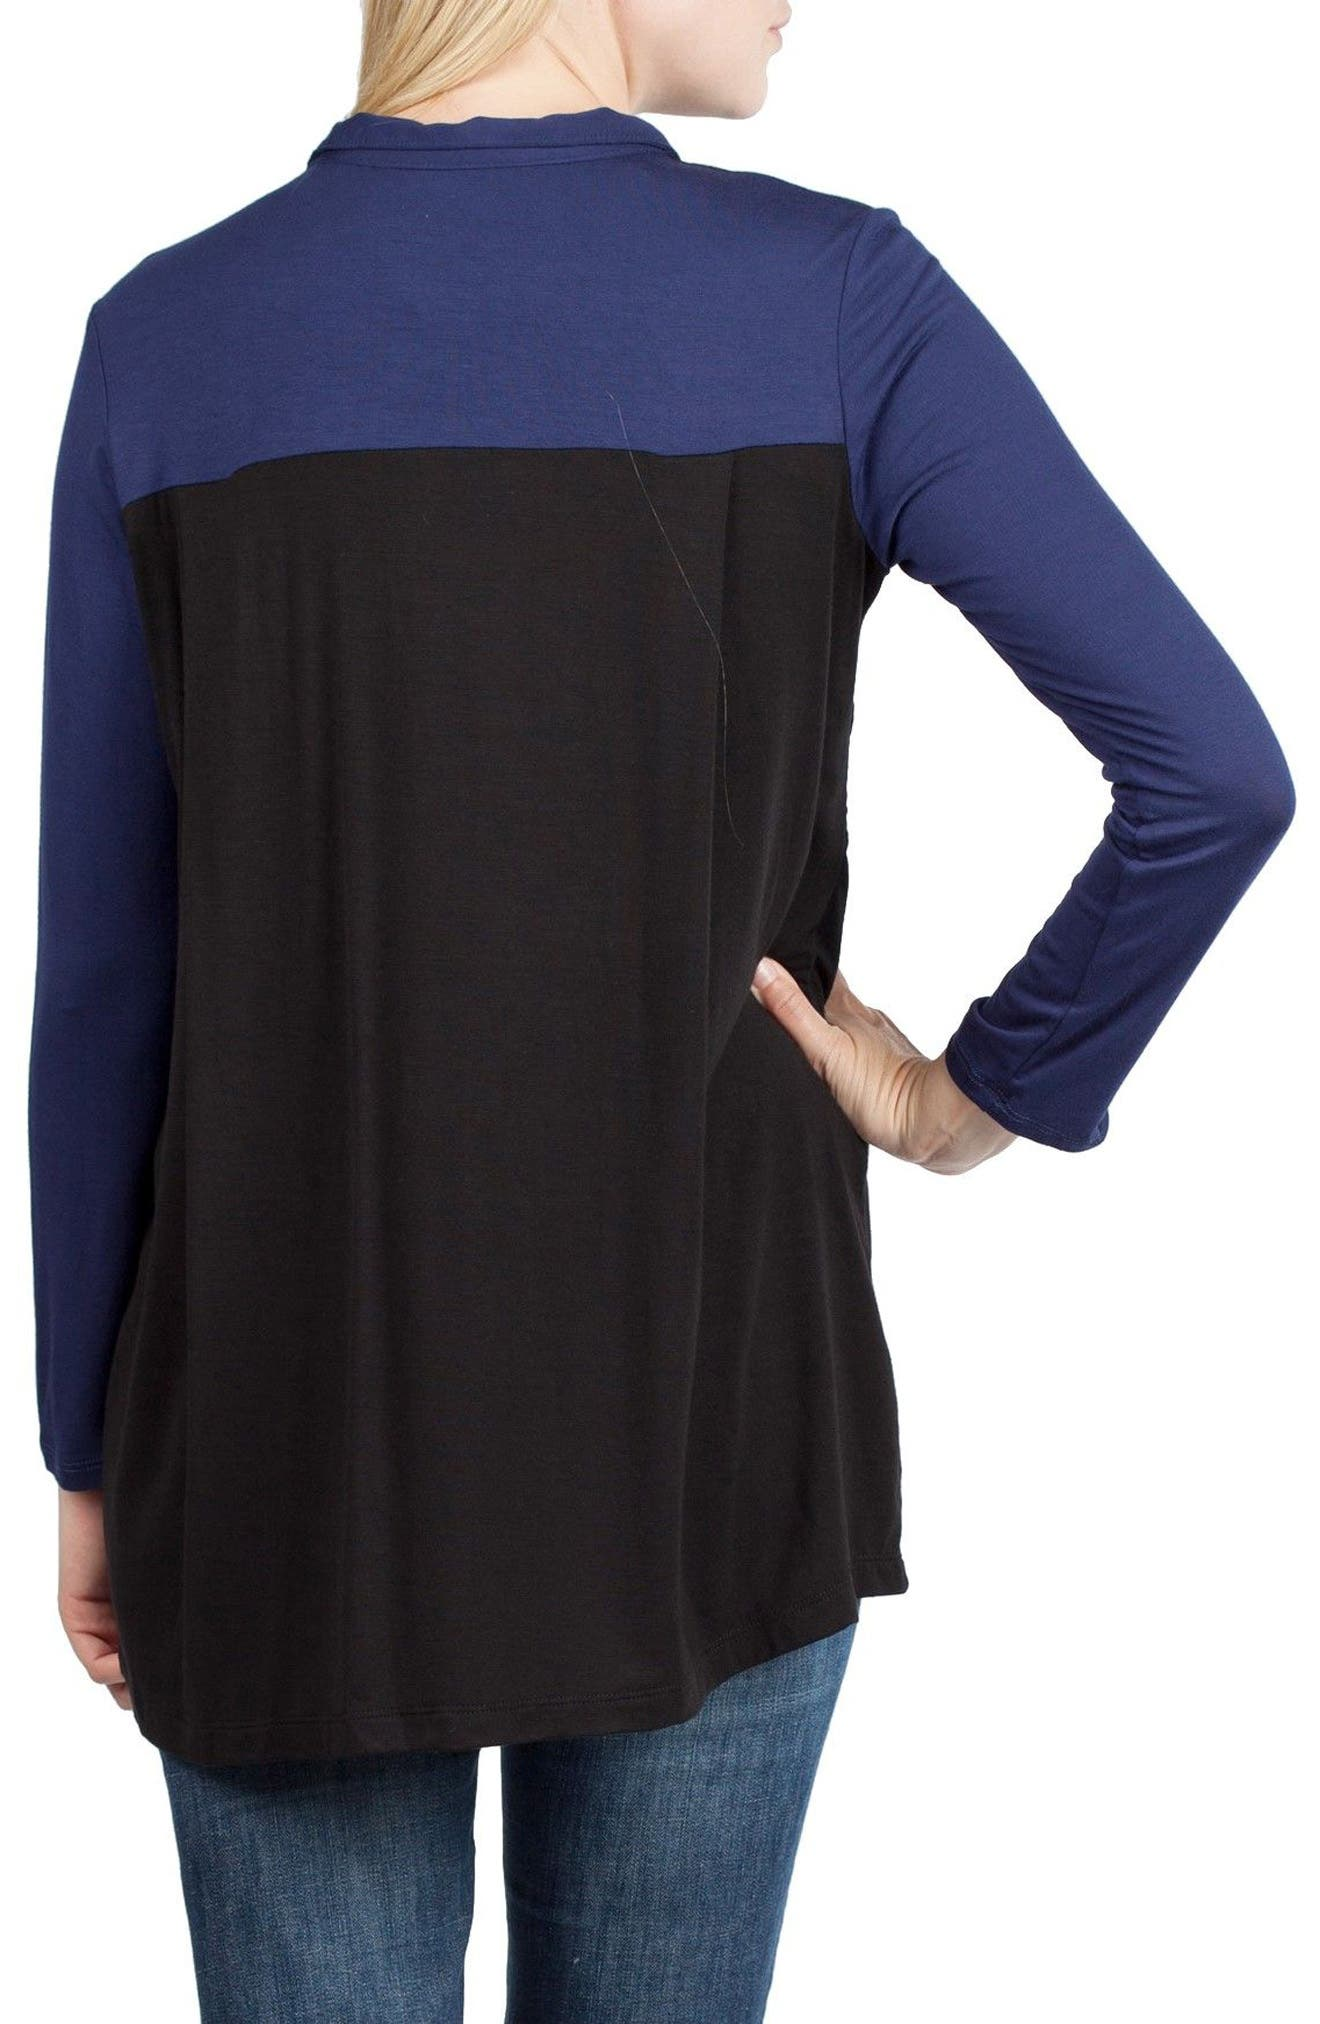 Berlin Maternity/Nursing Tunic Top,                             Alternate thumbnail 2, color,                             001